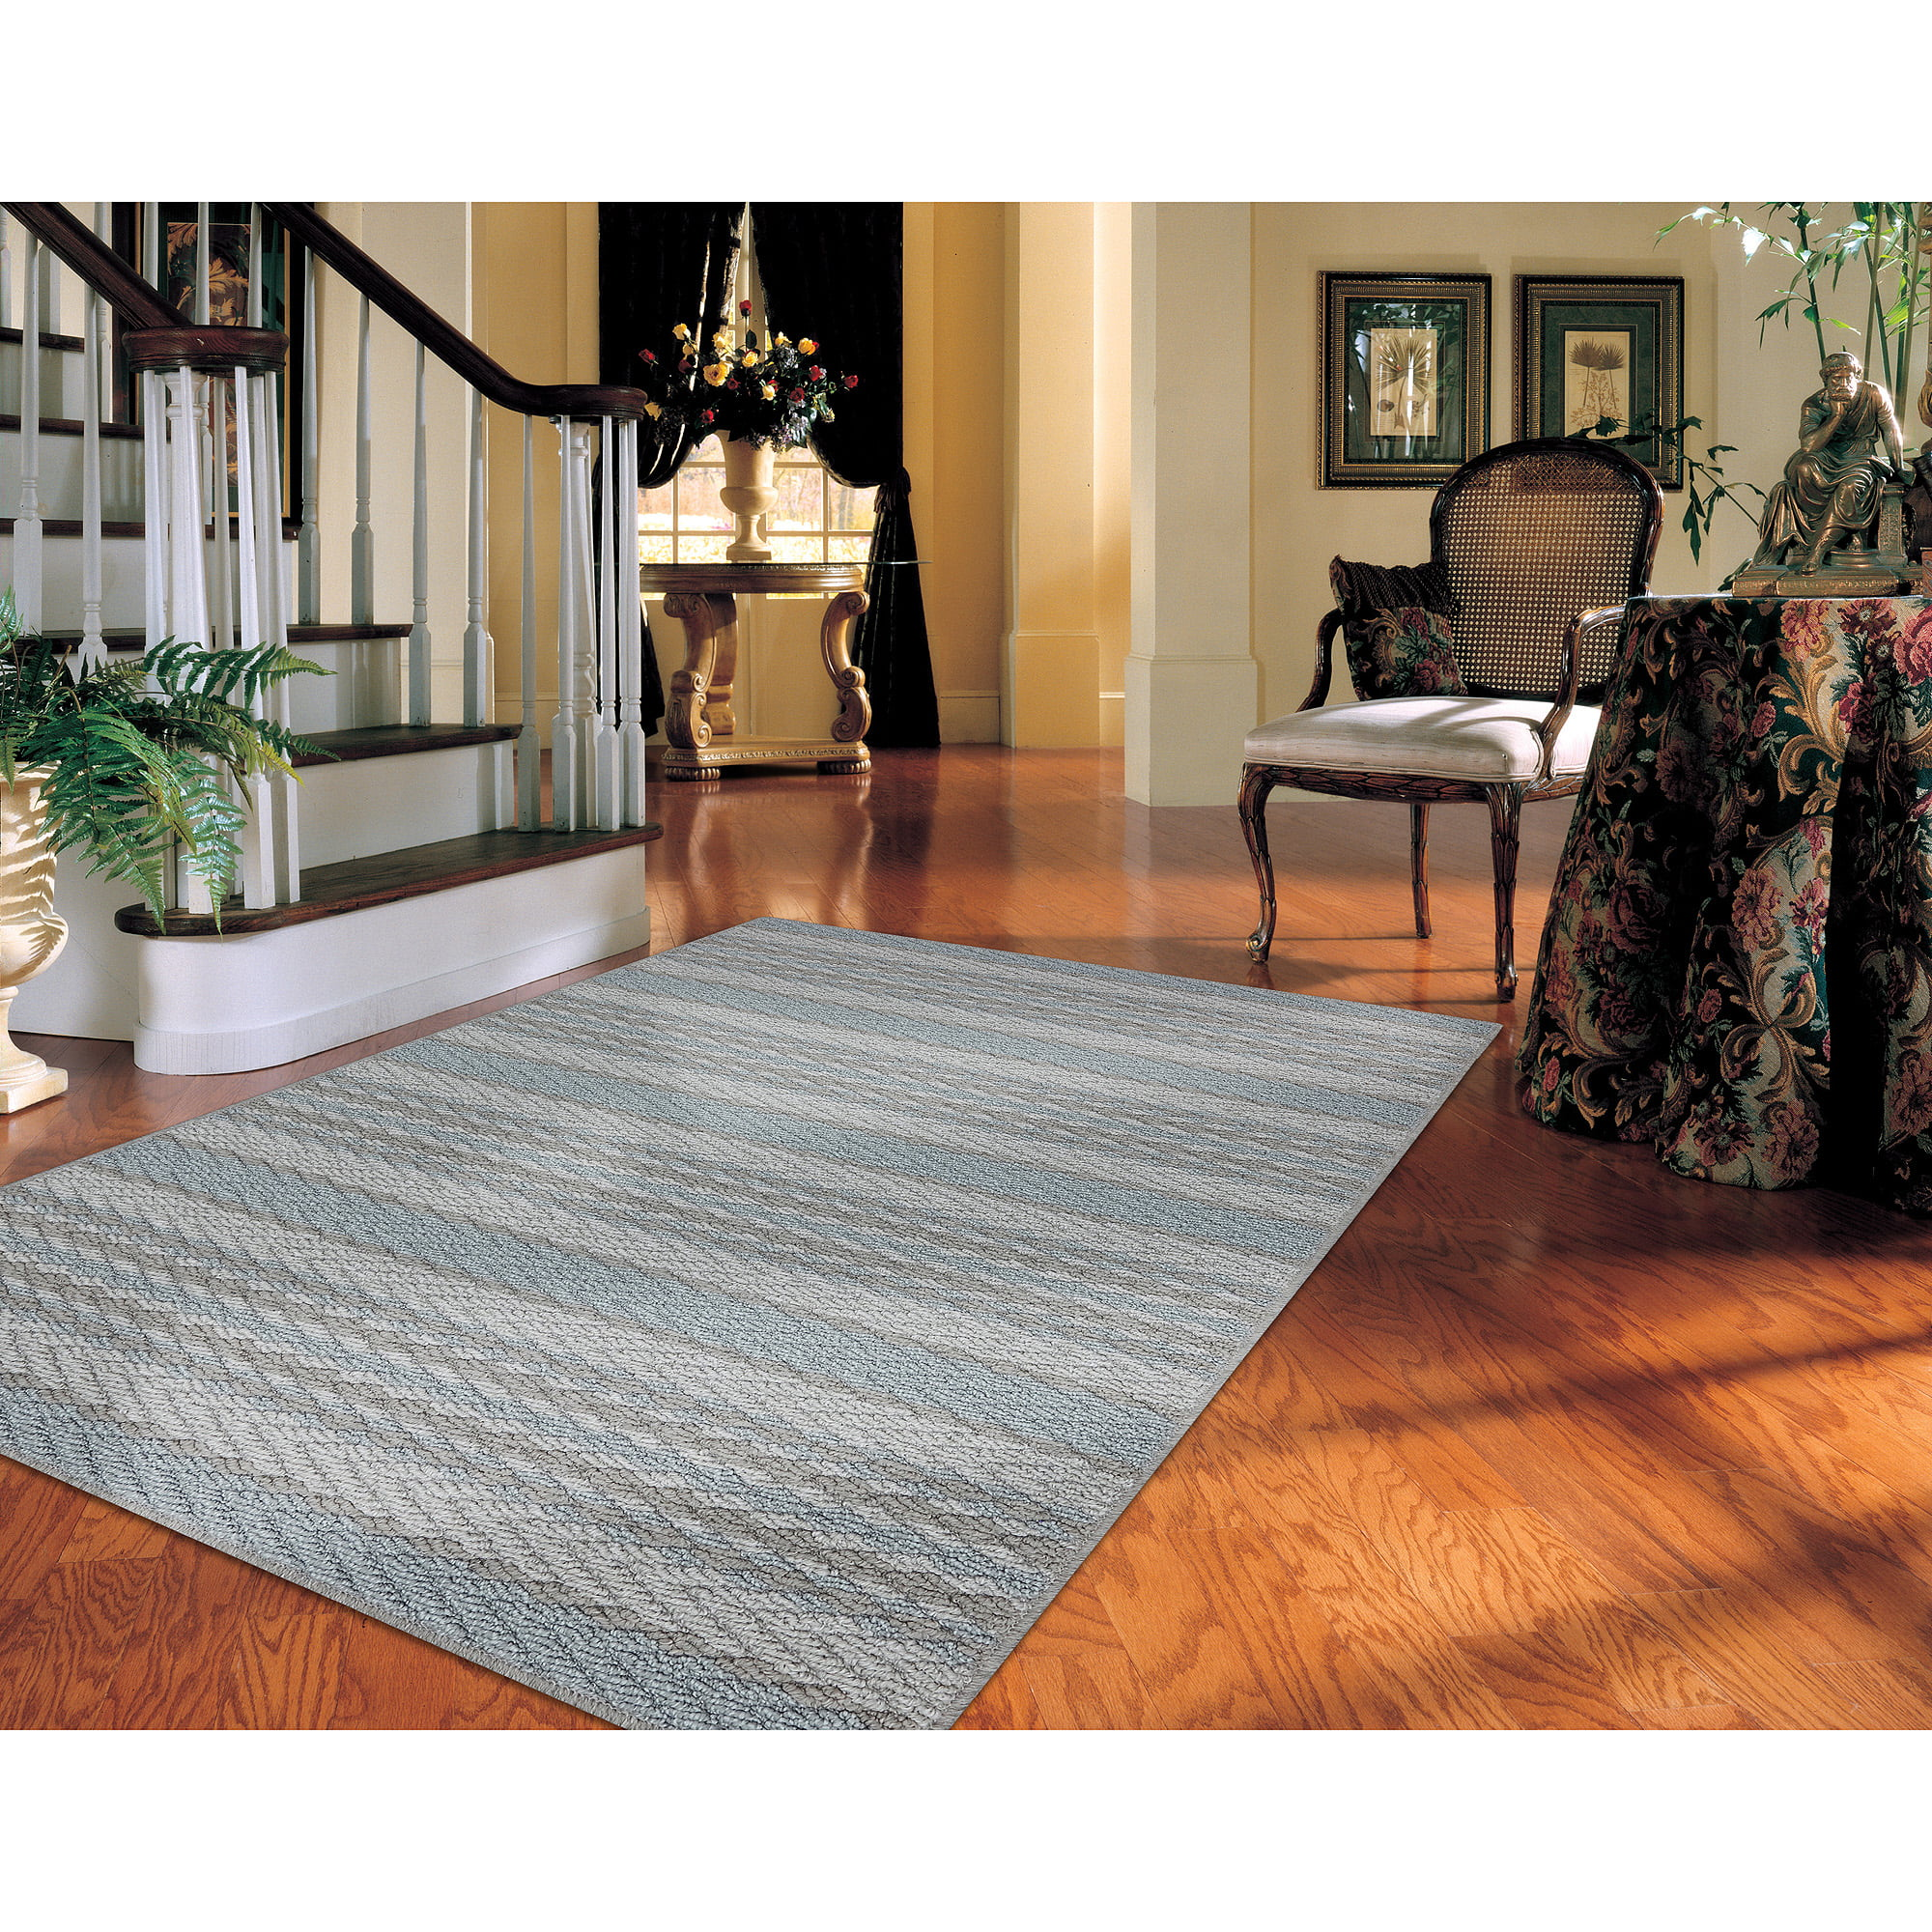 striped rugs -